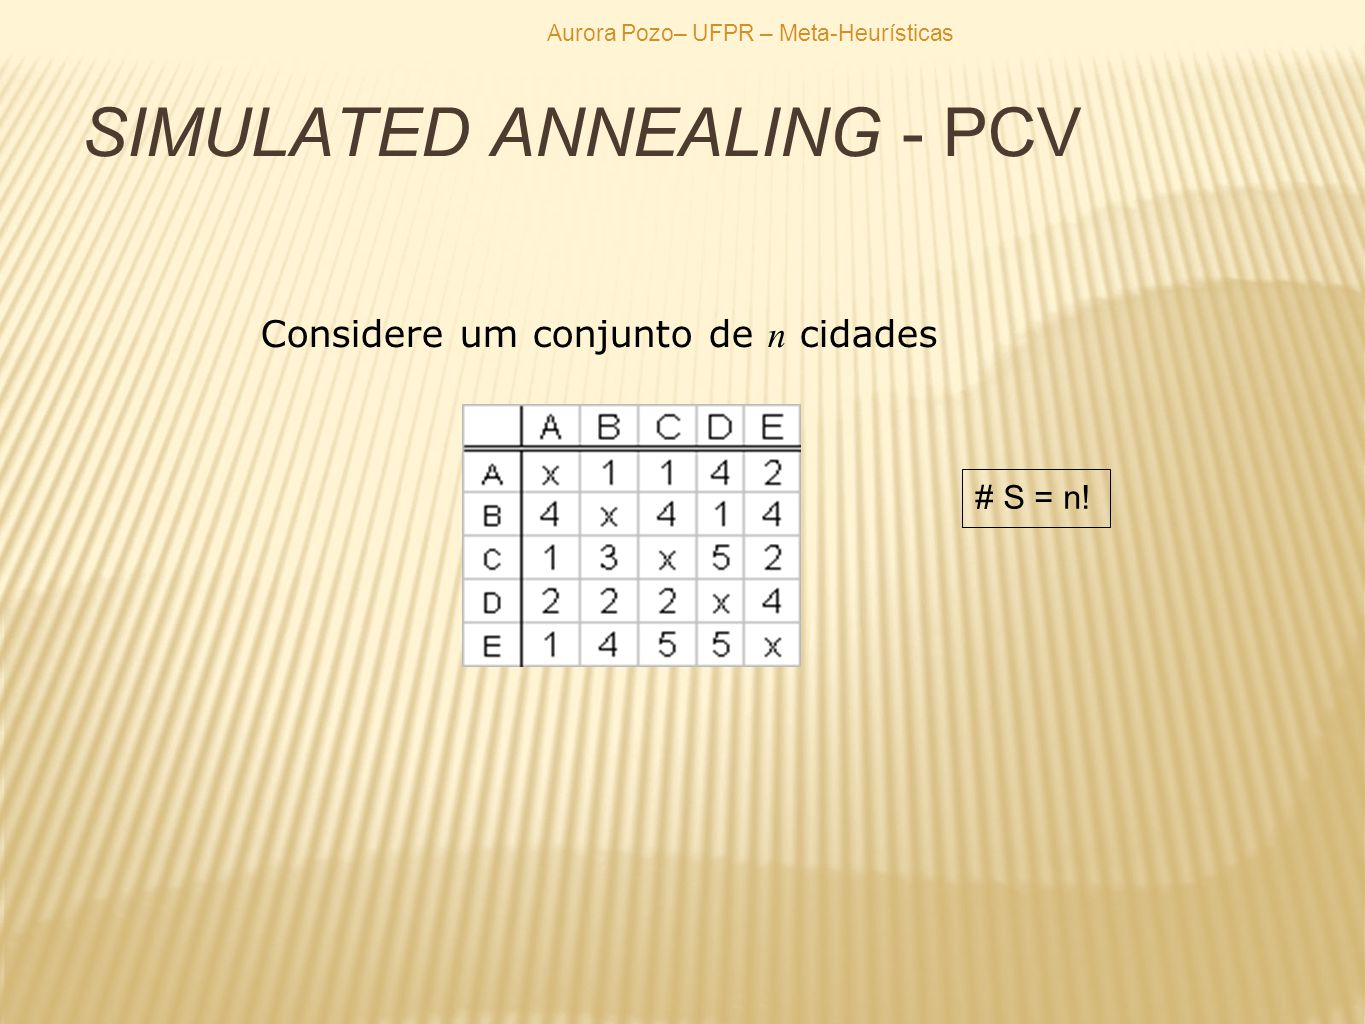 SIMULATED ANNEALING - PCV